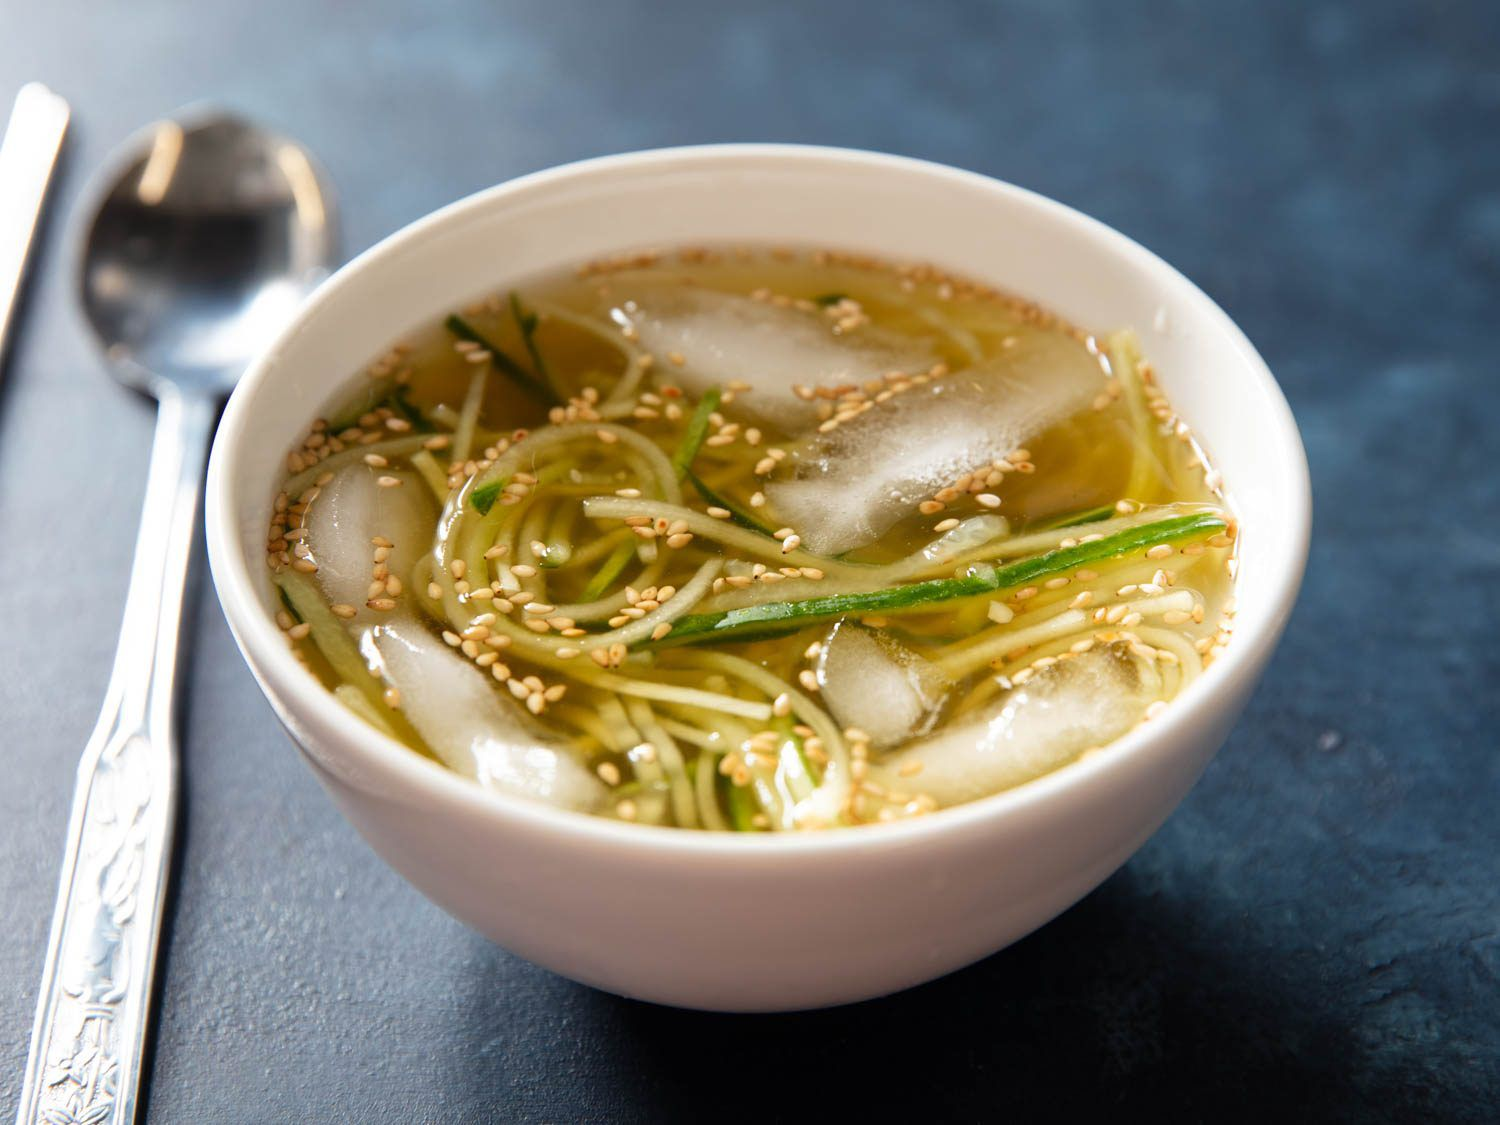 A bowl of oi naengguk, an icy chilled korean soup, will ice cubes floating in the bowl with the cucumbers and broth